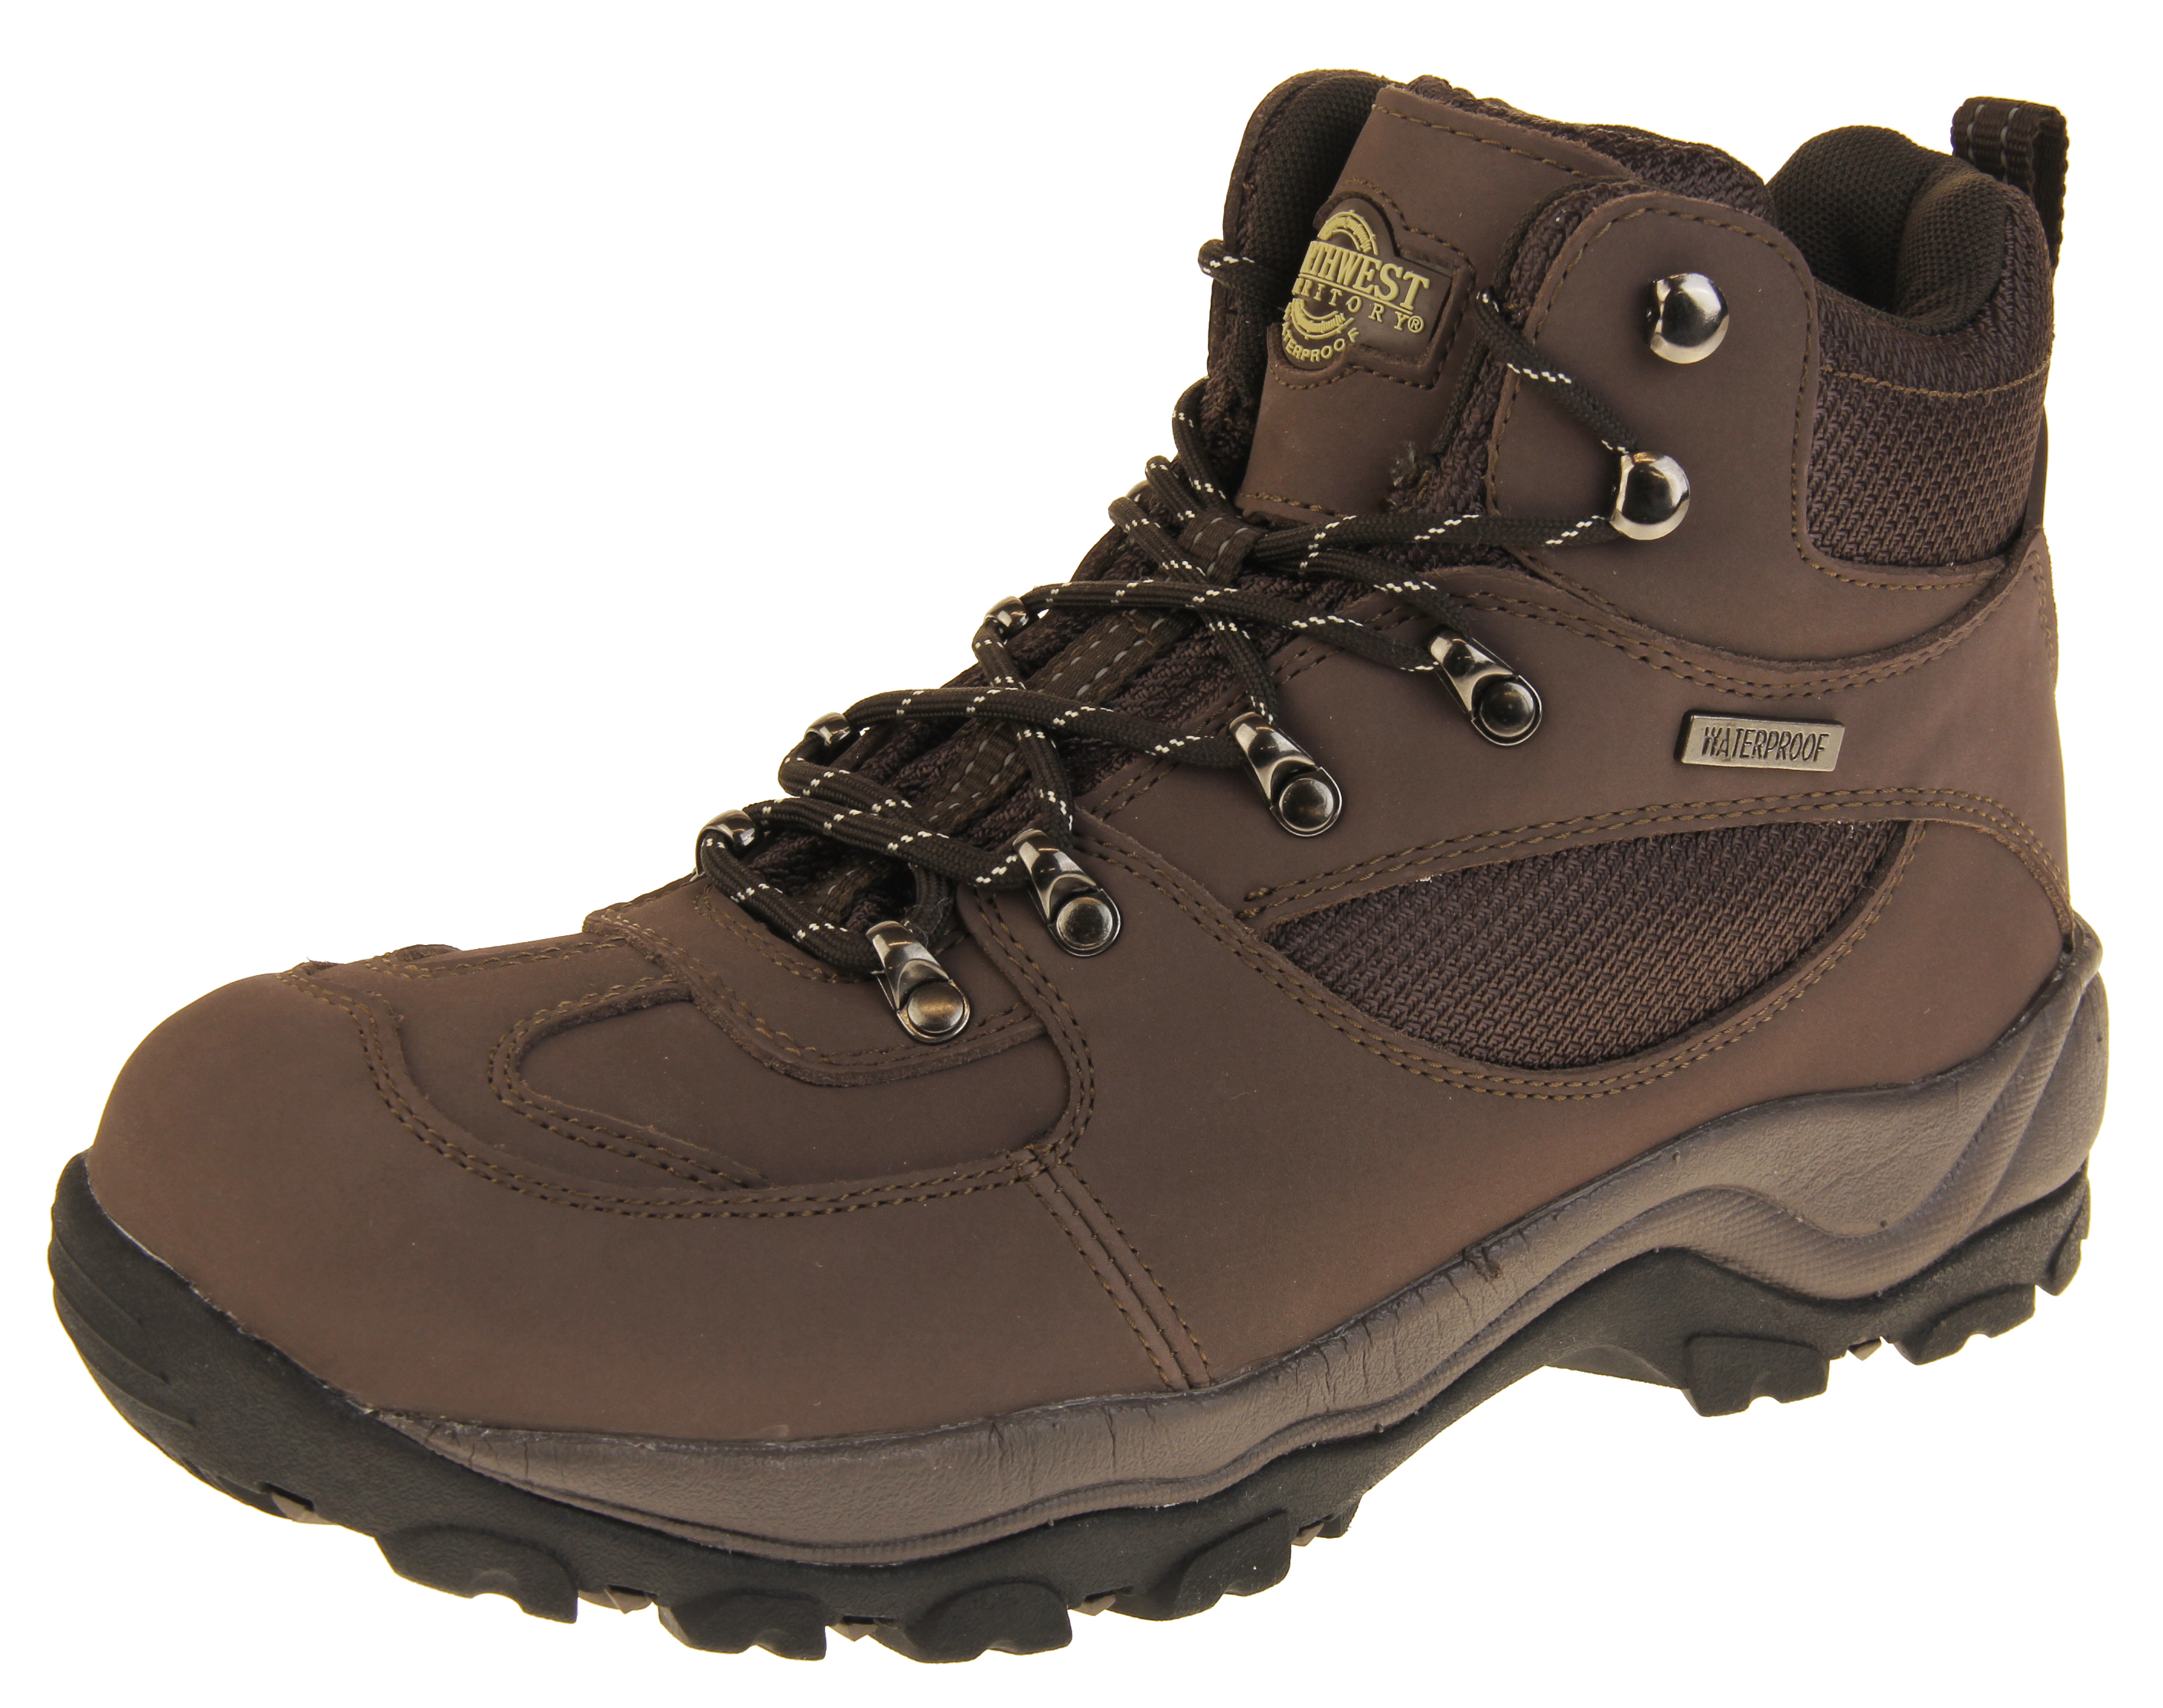 e05e4dfdc64 Details about Mens Waterproof Northwest Territory Leather Hiker Walking  Hiking Boots Size 6-13